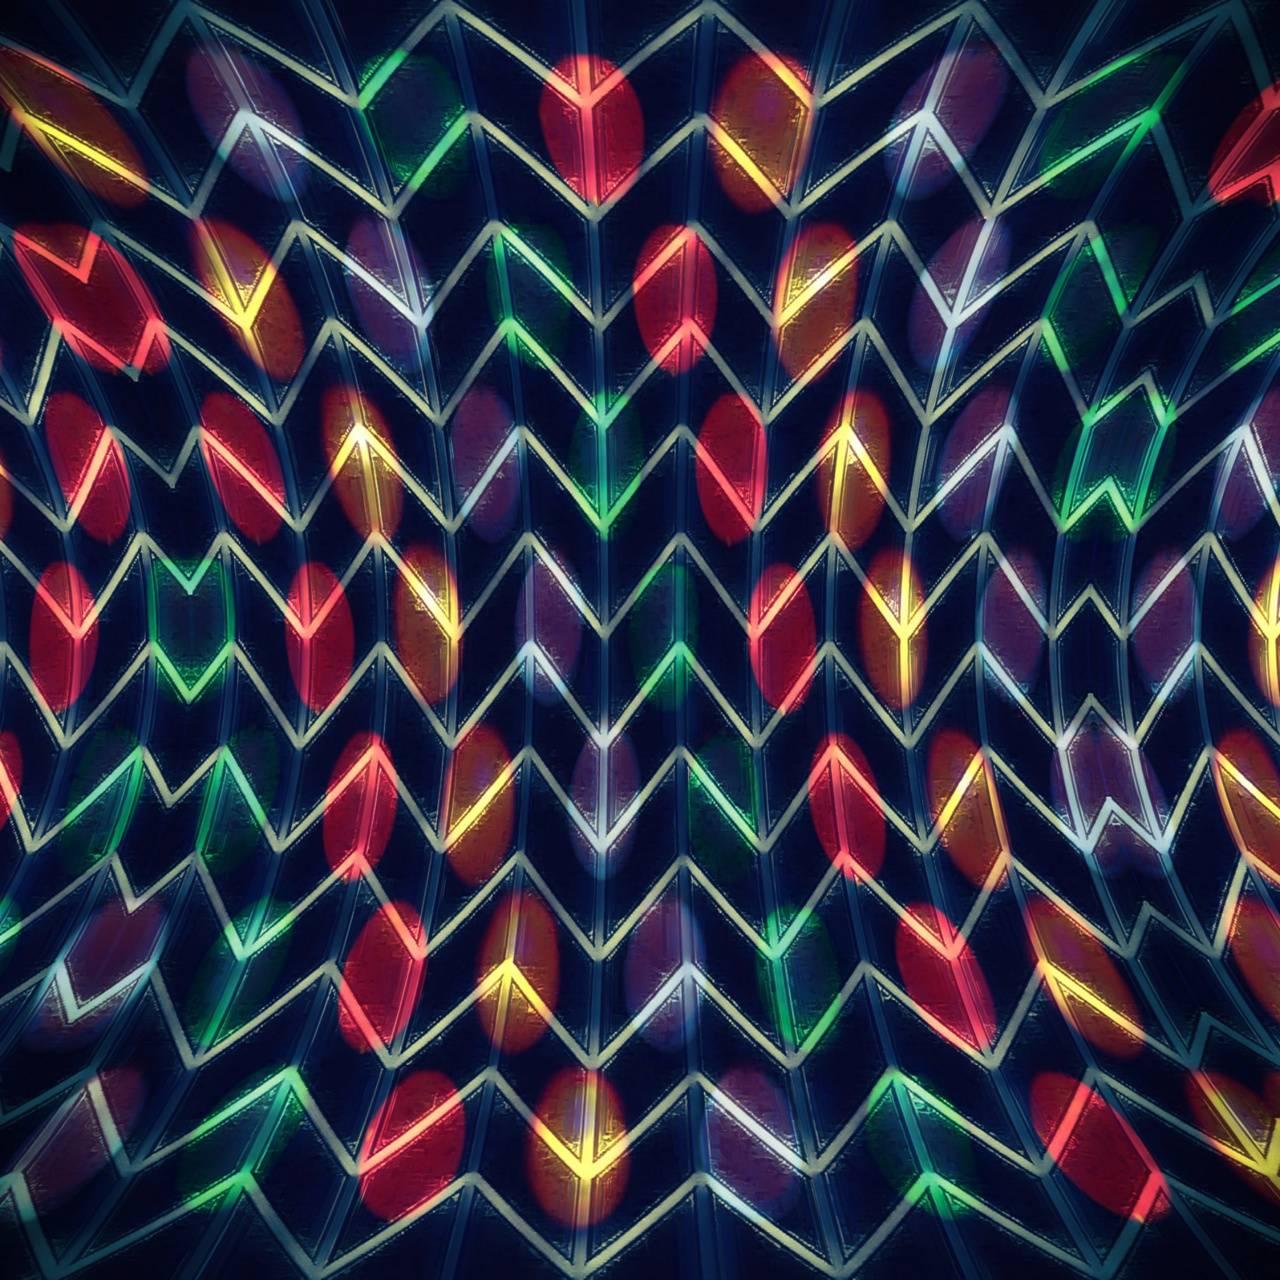 Melted Neon Chevron